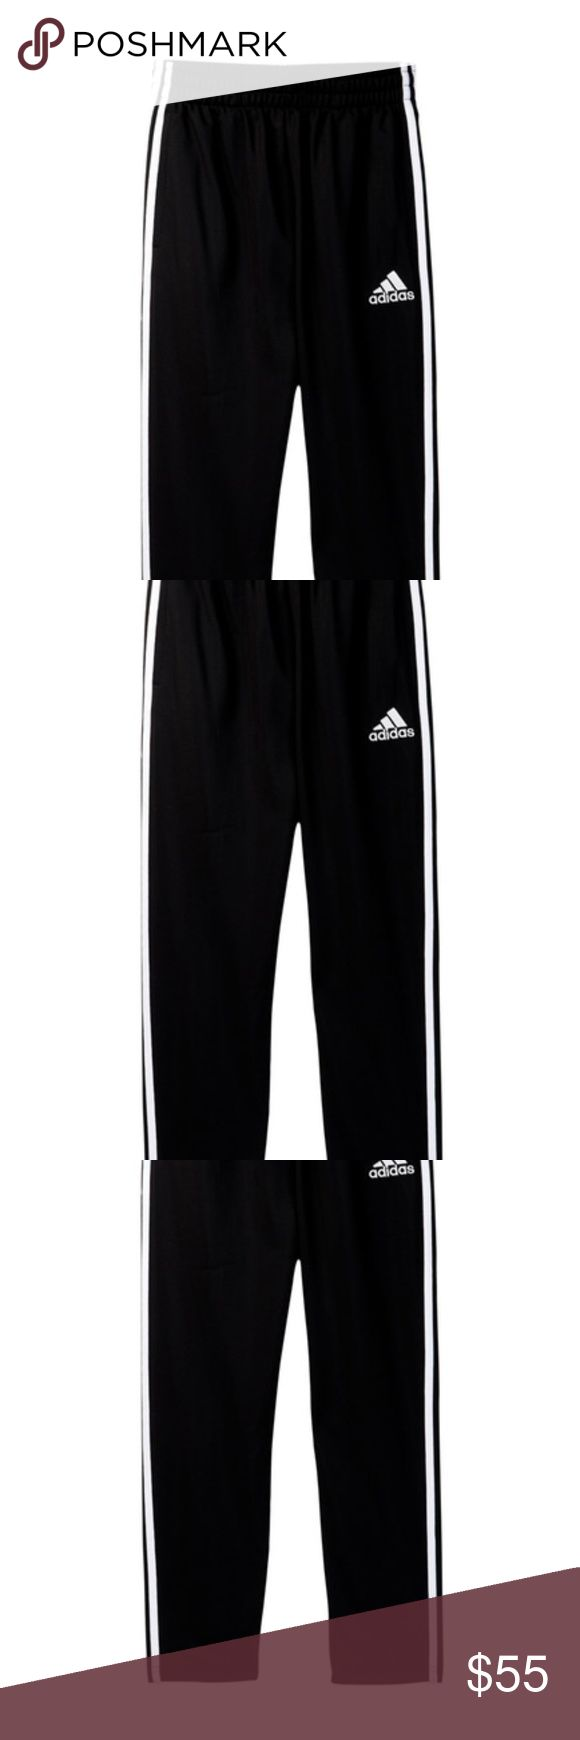 NWT women's adidas Trainer Pant Black size Large New women's adidas Trainer Pant Black size Large Inseam of 32 inches adidas Pants Track Pants & Joggers